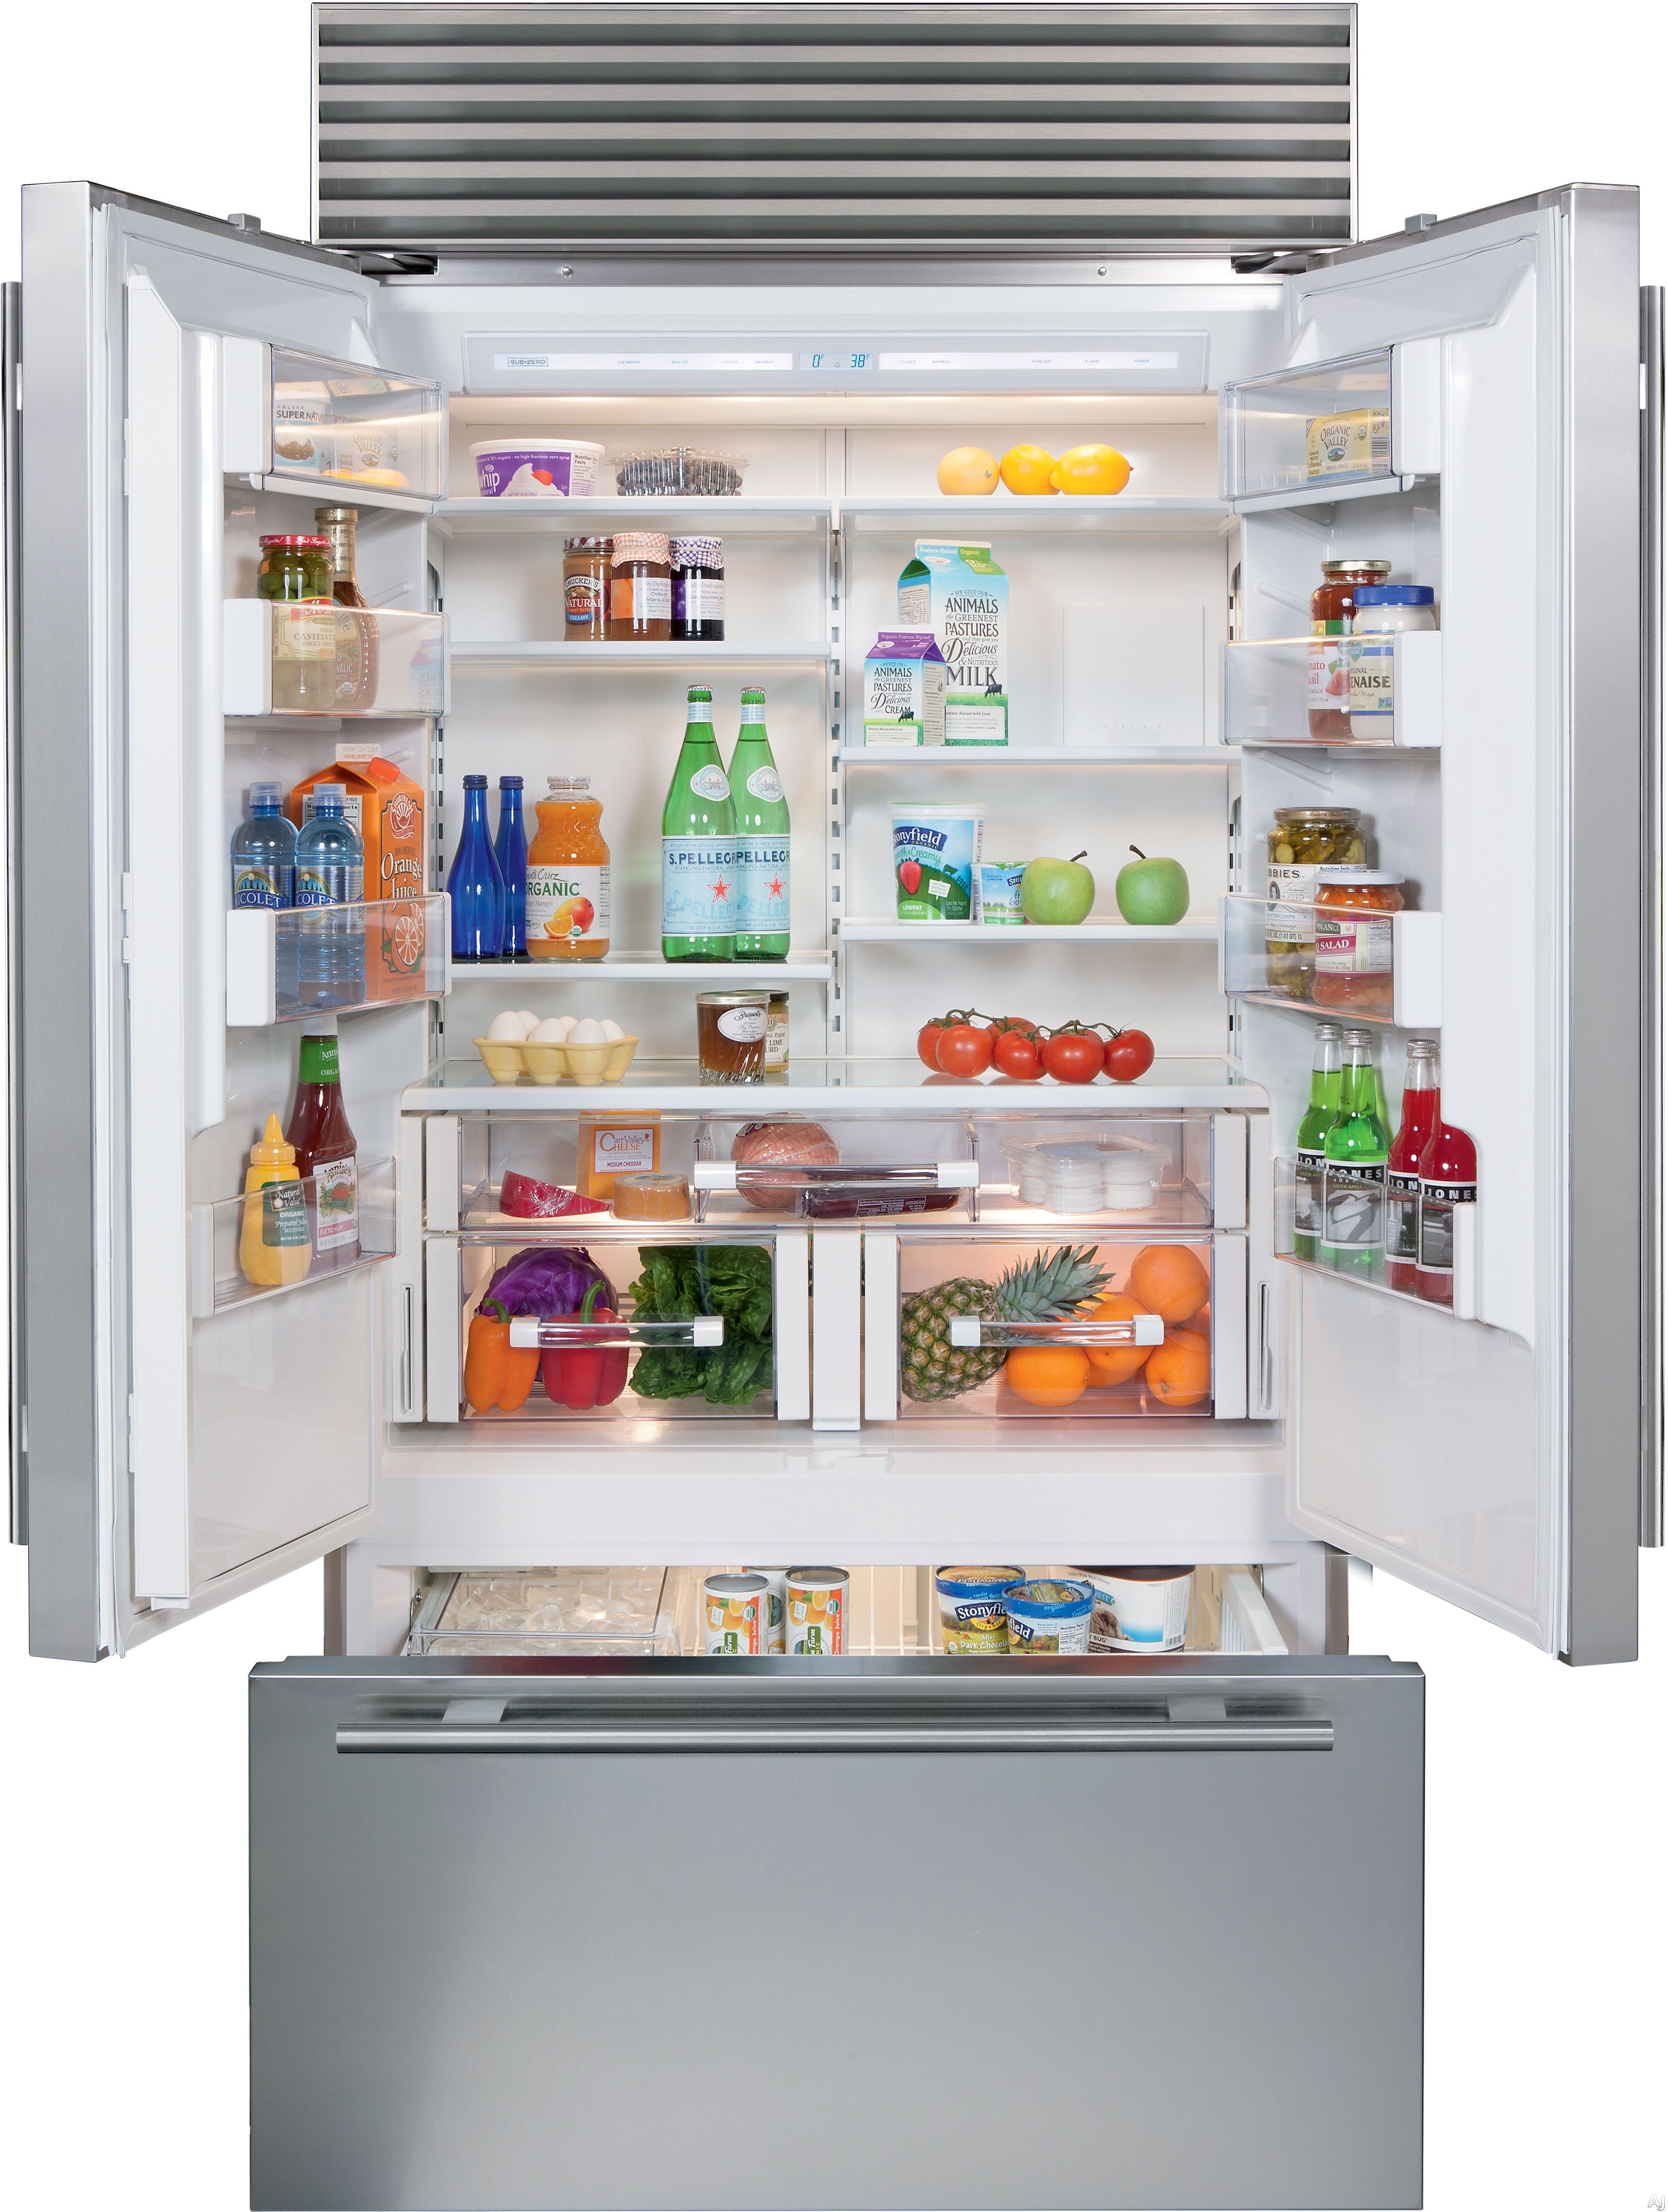 Beau Sub Zero BI42UFD 42 Inch Built In French Door Refrigerator With 18.3 Cu.  Ft. Capacity, Spill Proof Glass Shelves, Dual Refrigeration, Air  Purification, ...